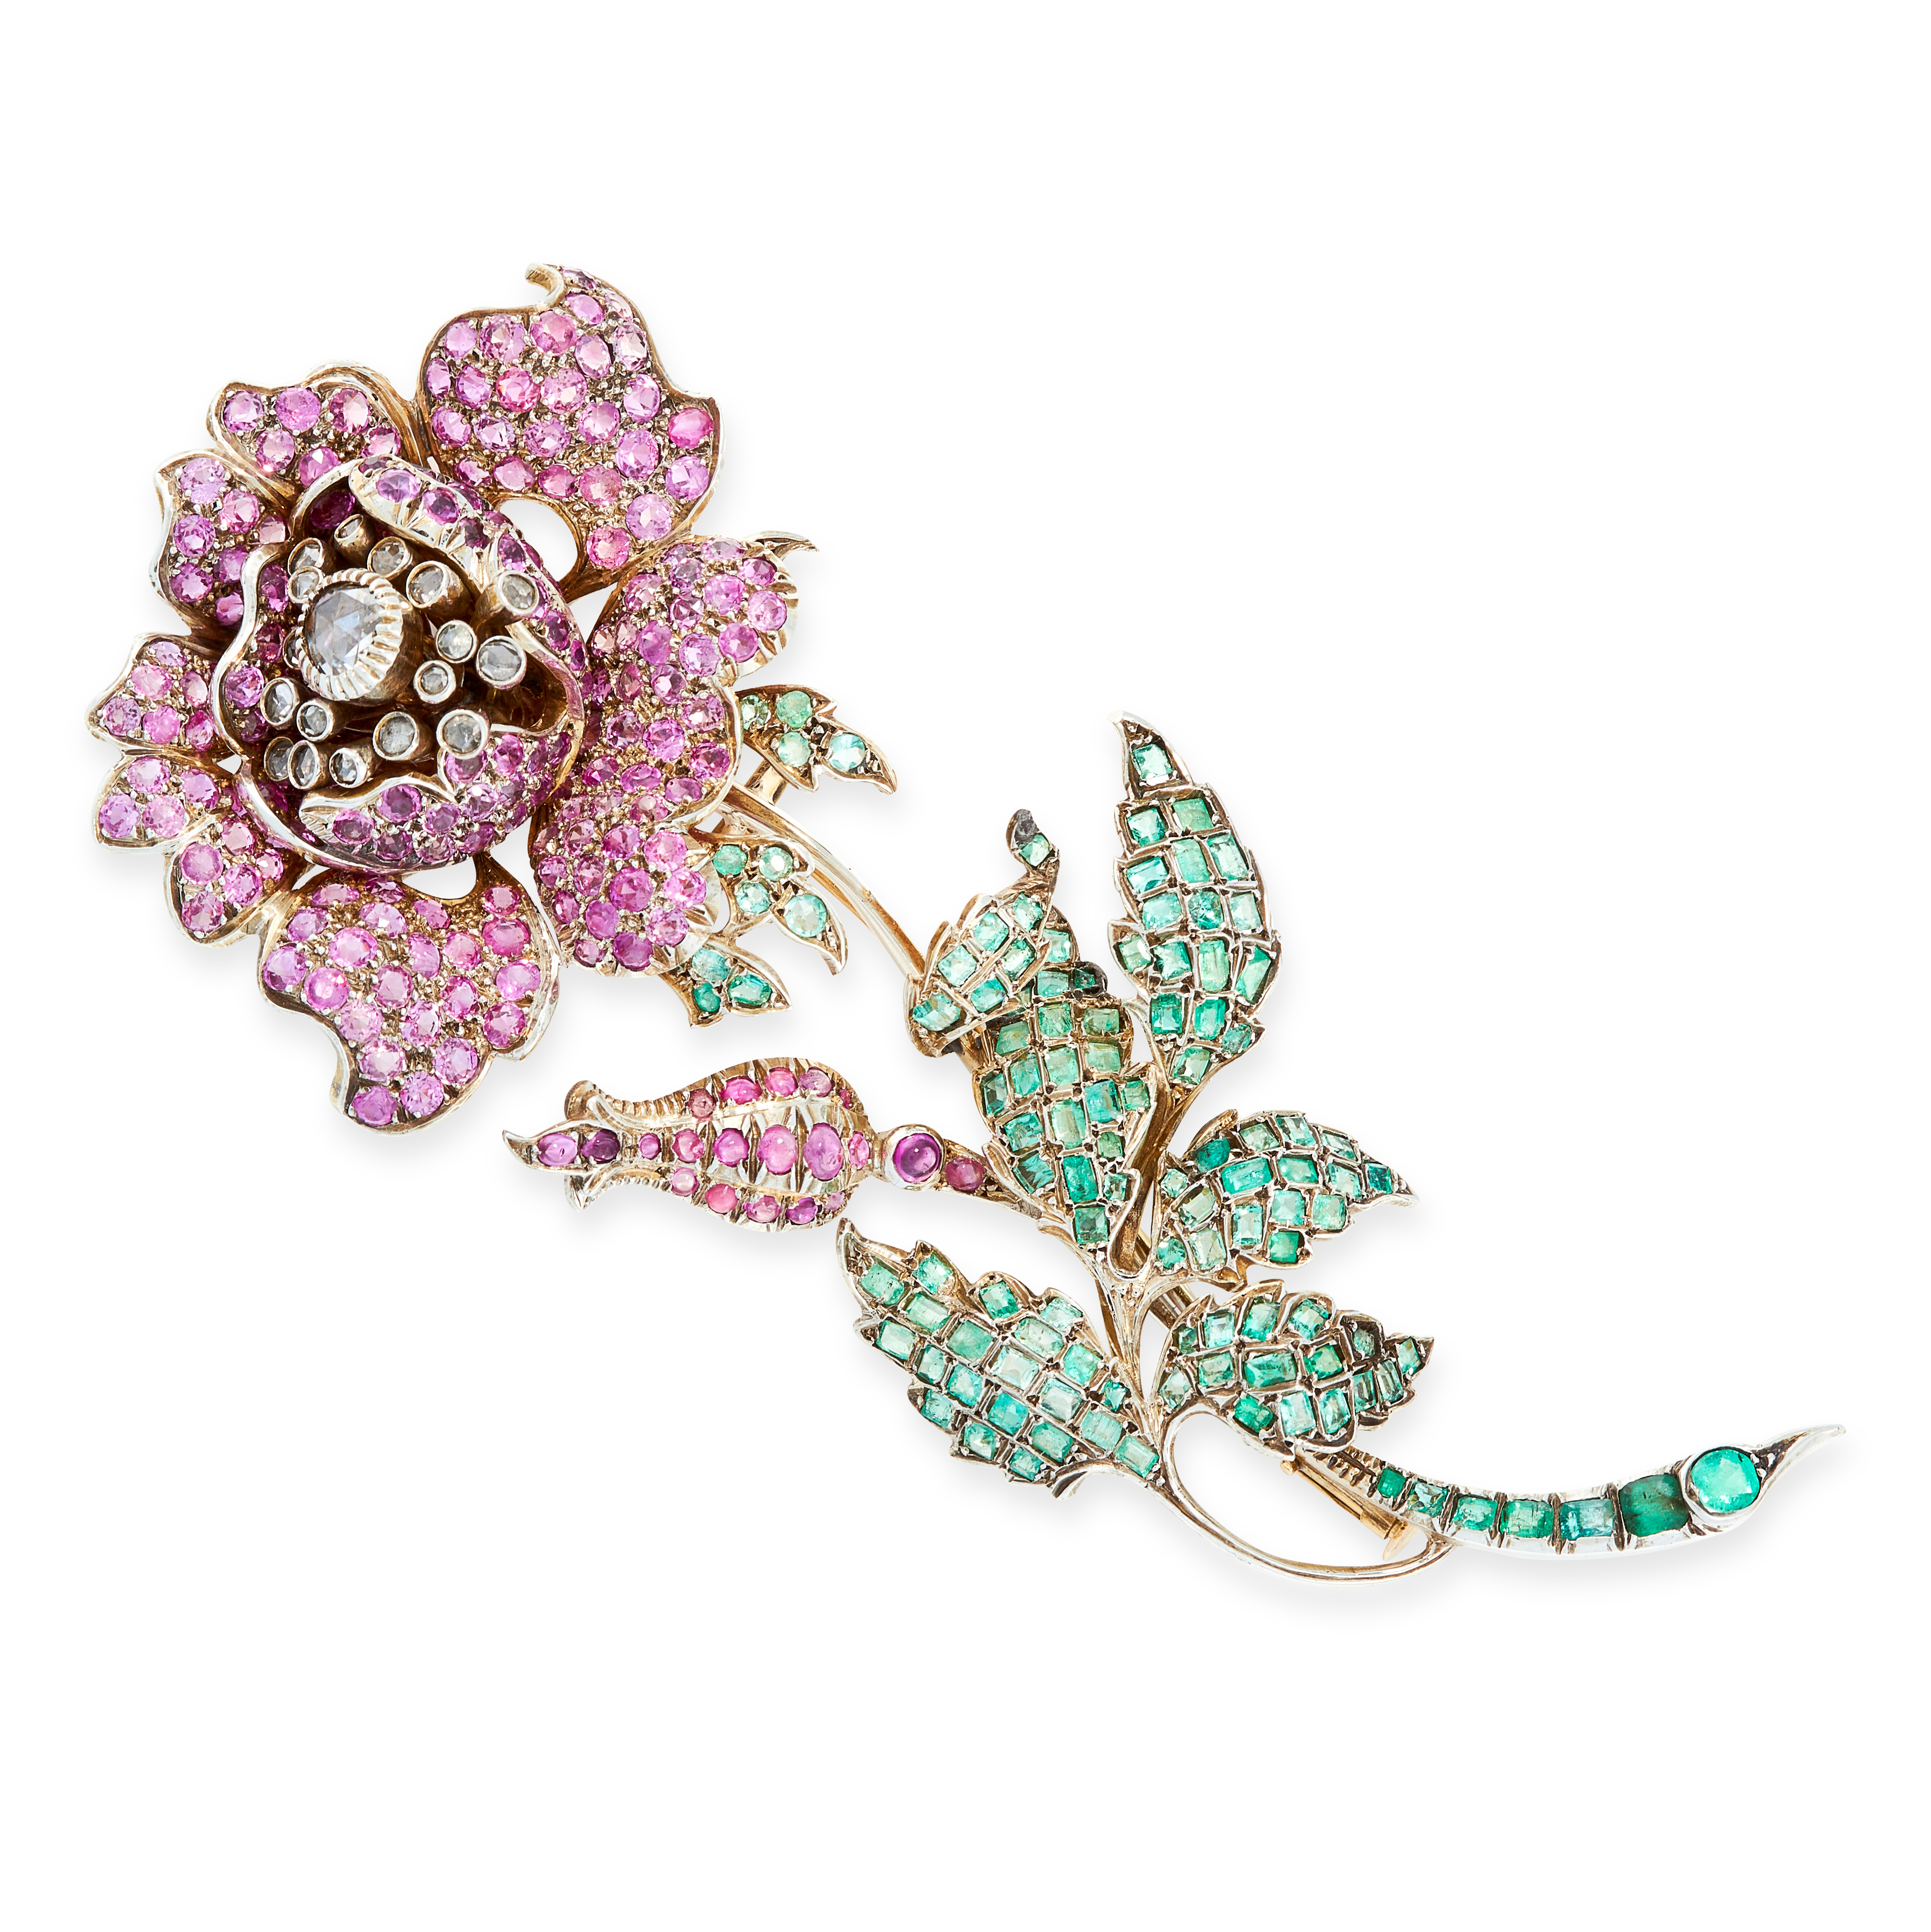 A BURMA NO HEAT PINK SAPPHIRE, EMERALD AND DIAMOND BROOCH in yellow gold and silver, designed as a